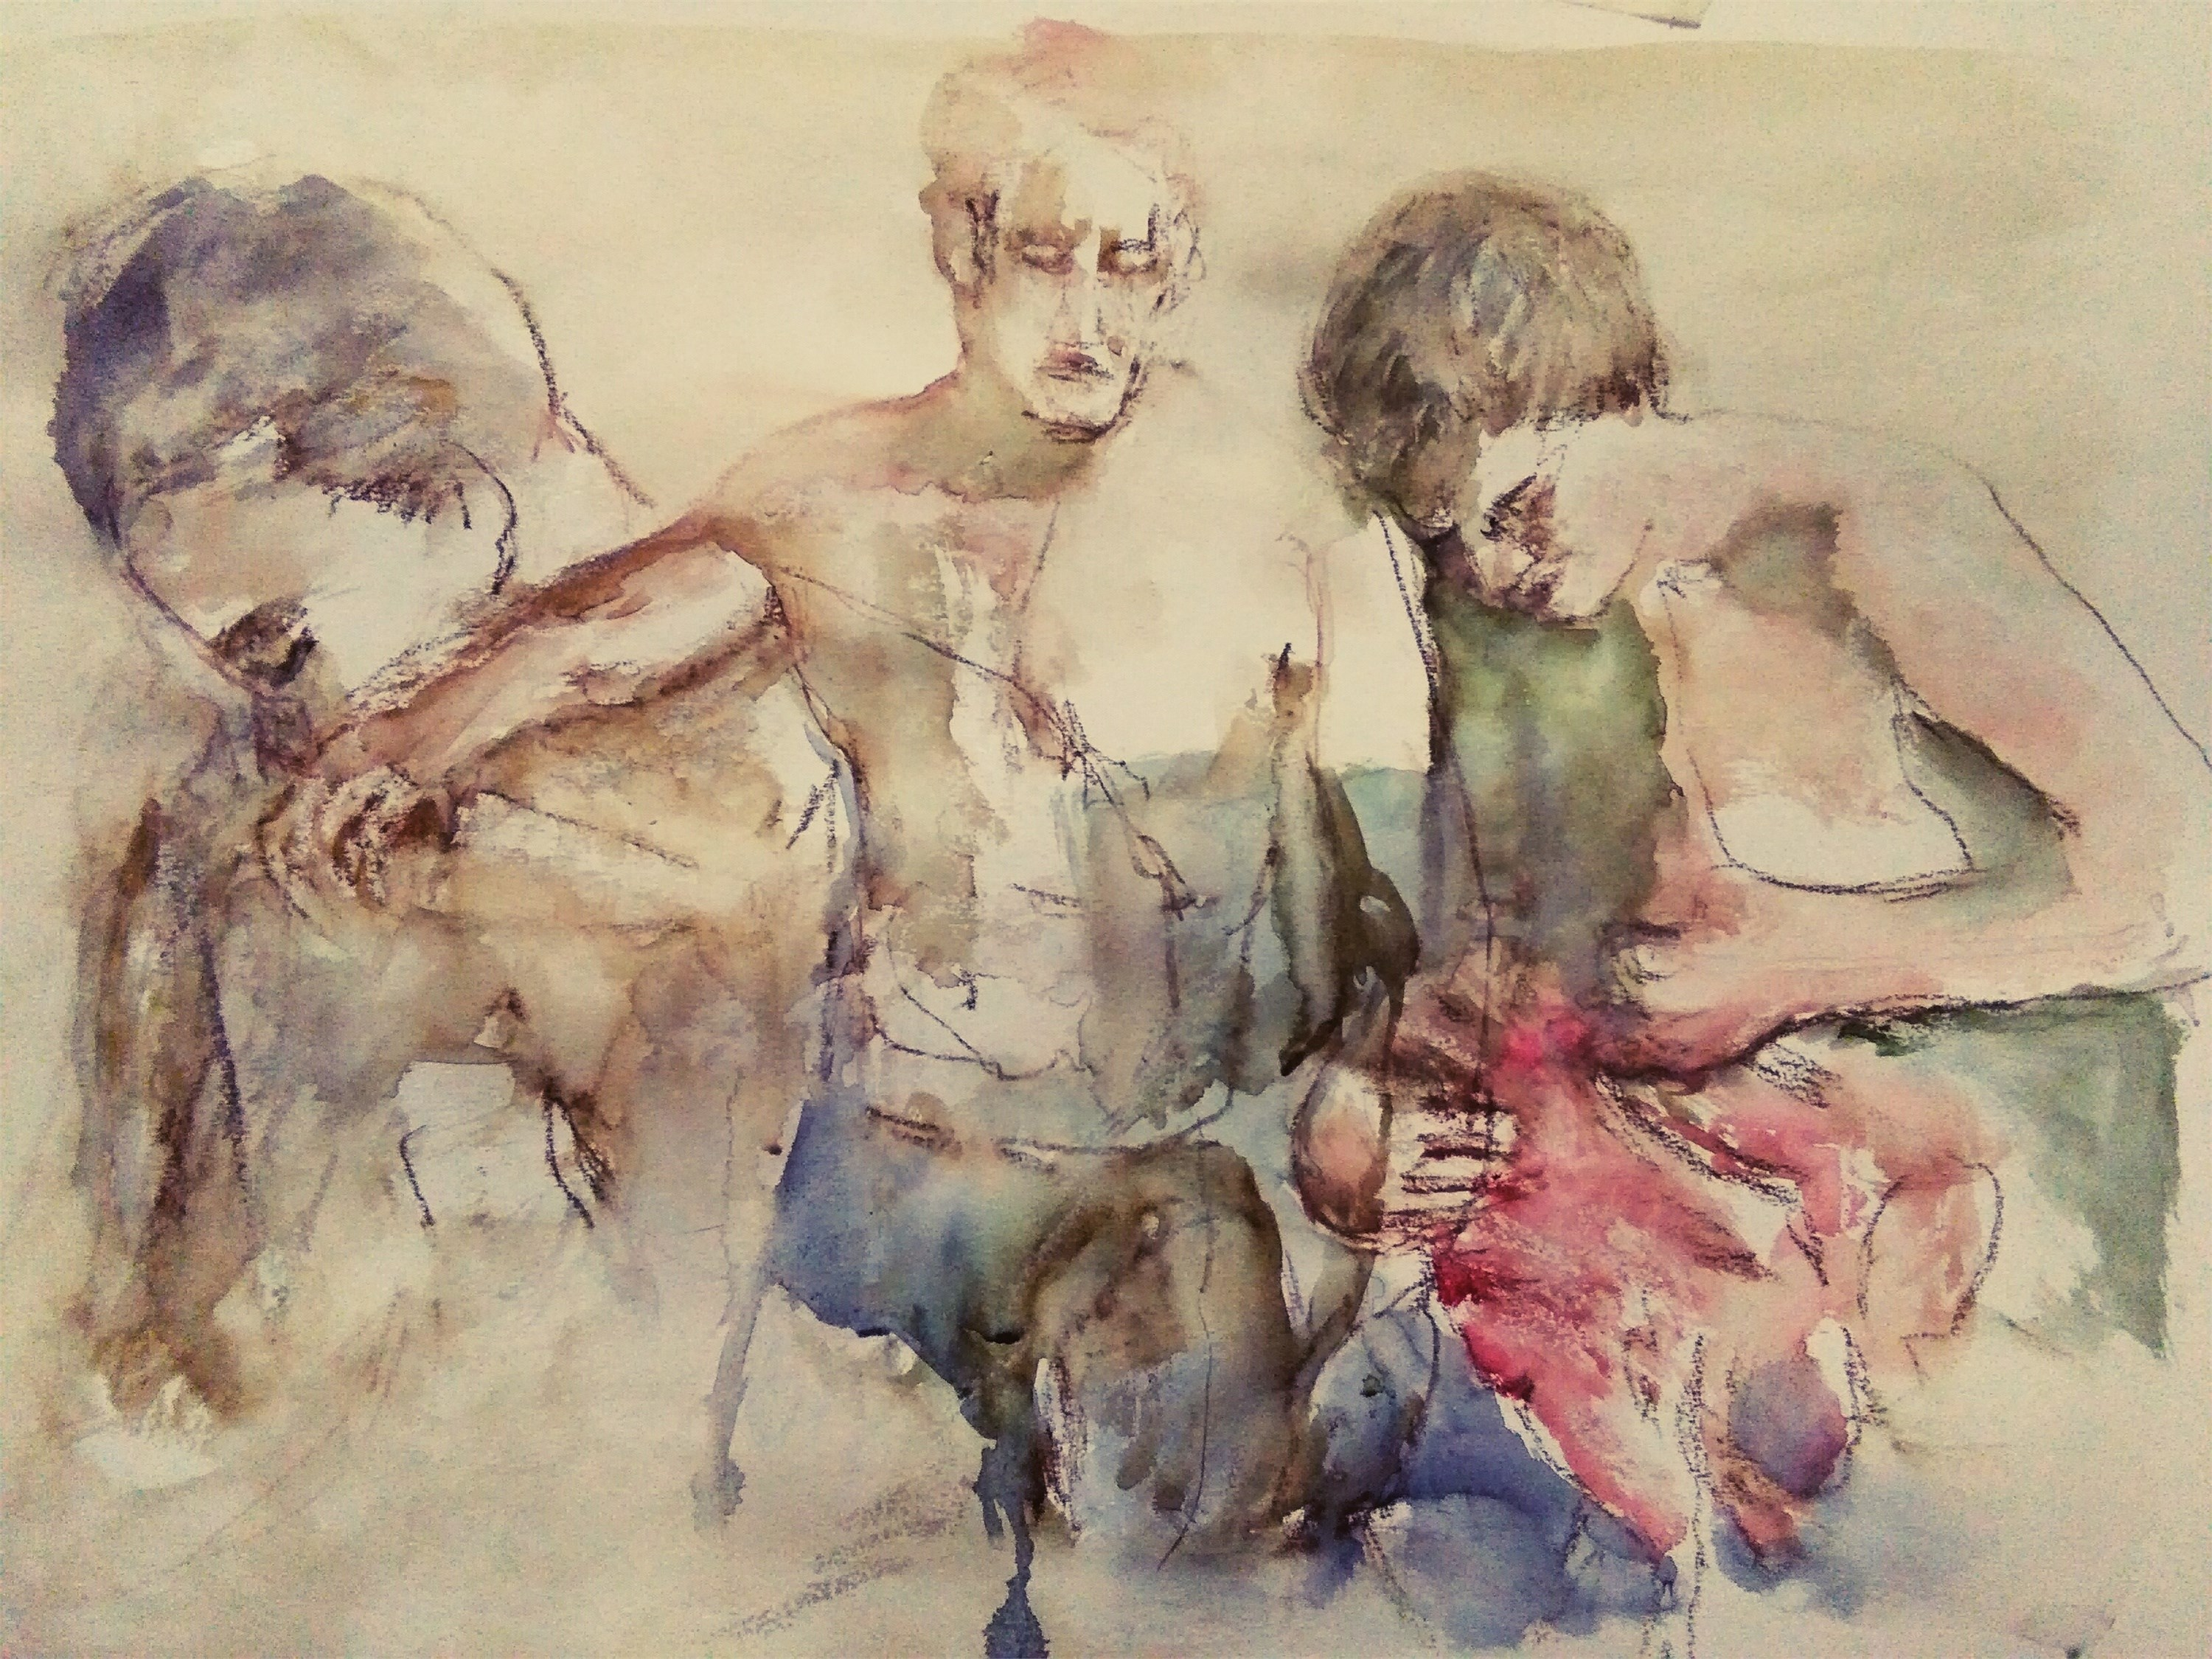 Waiting Hoper, original Human Figure Watercolor Painting by CARLA GONCALVES